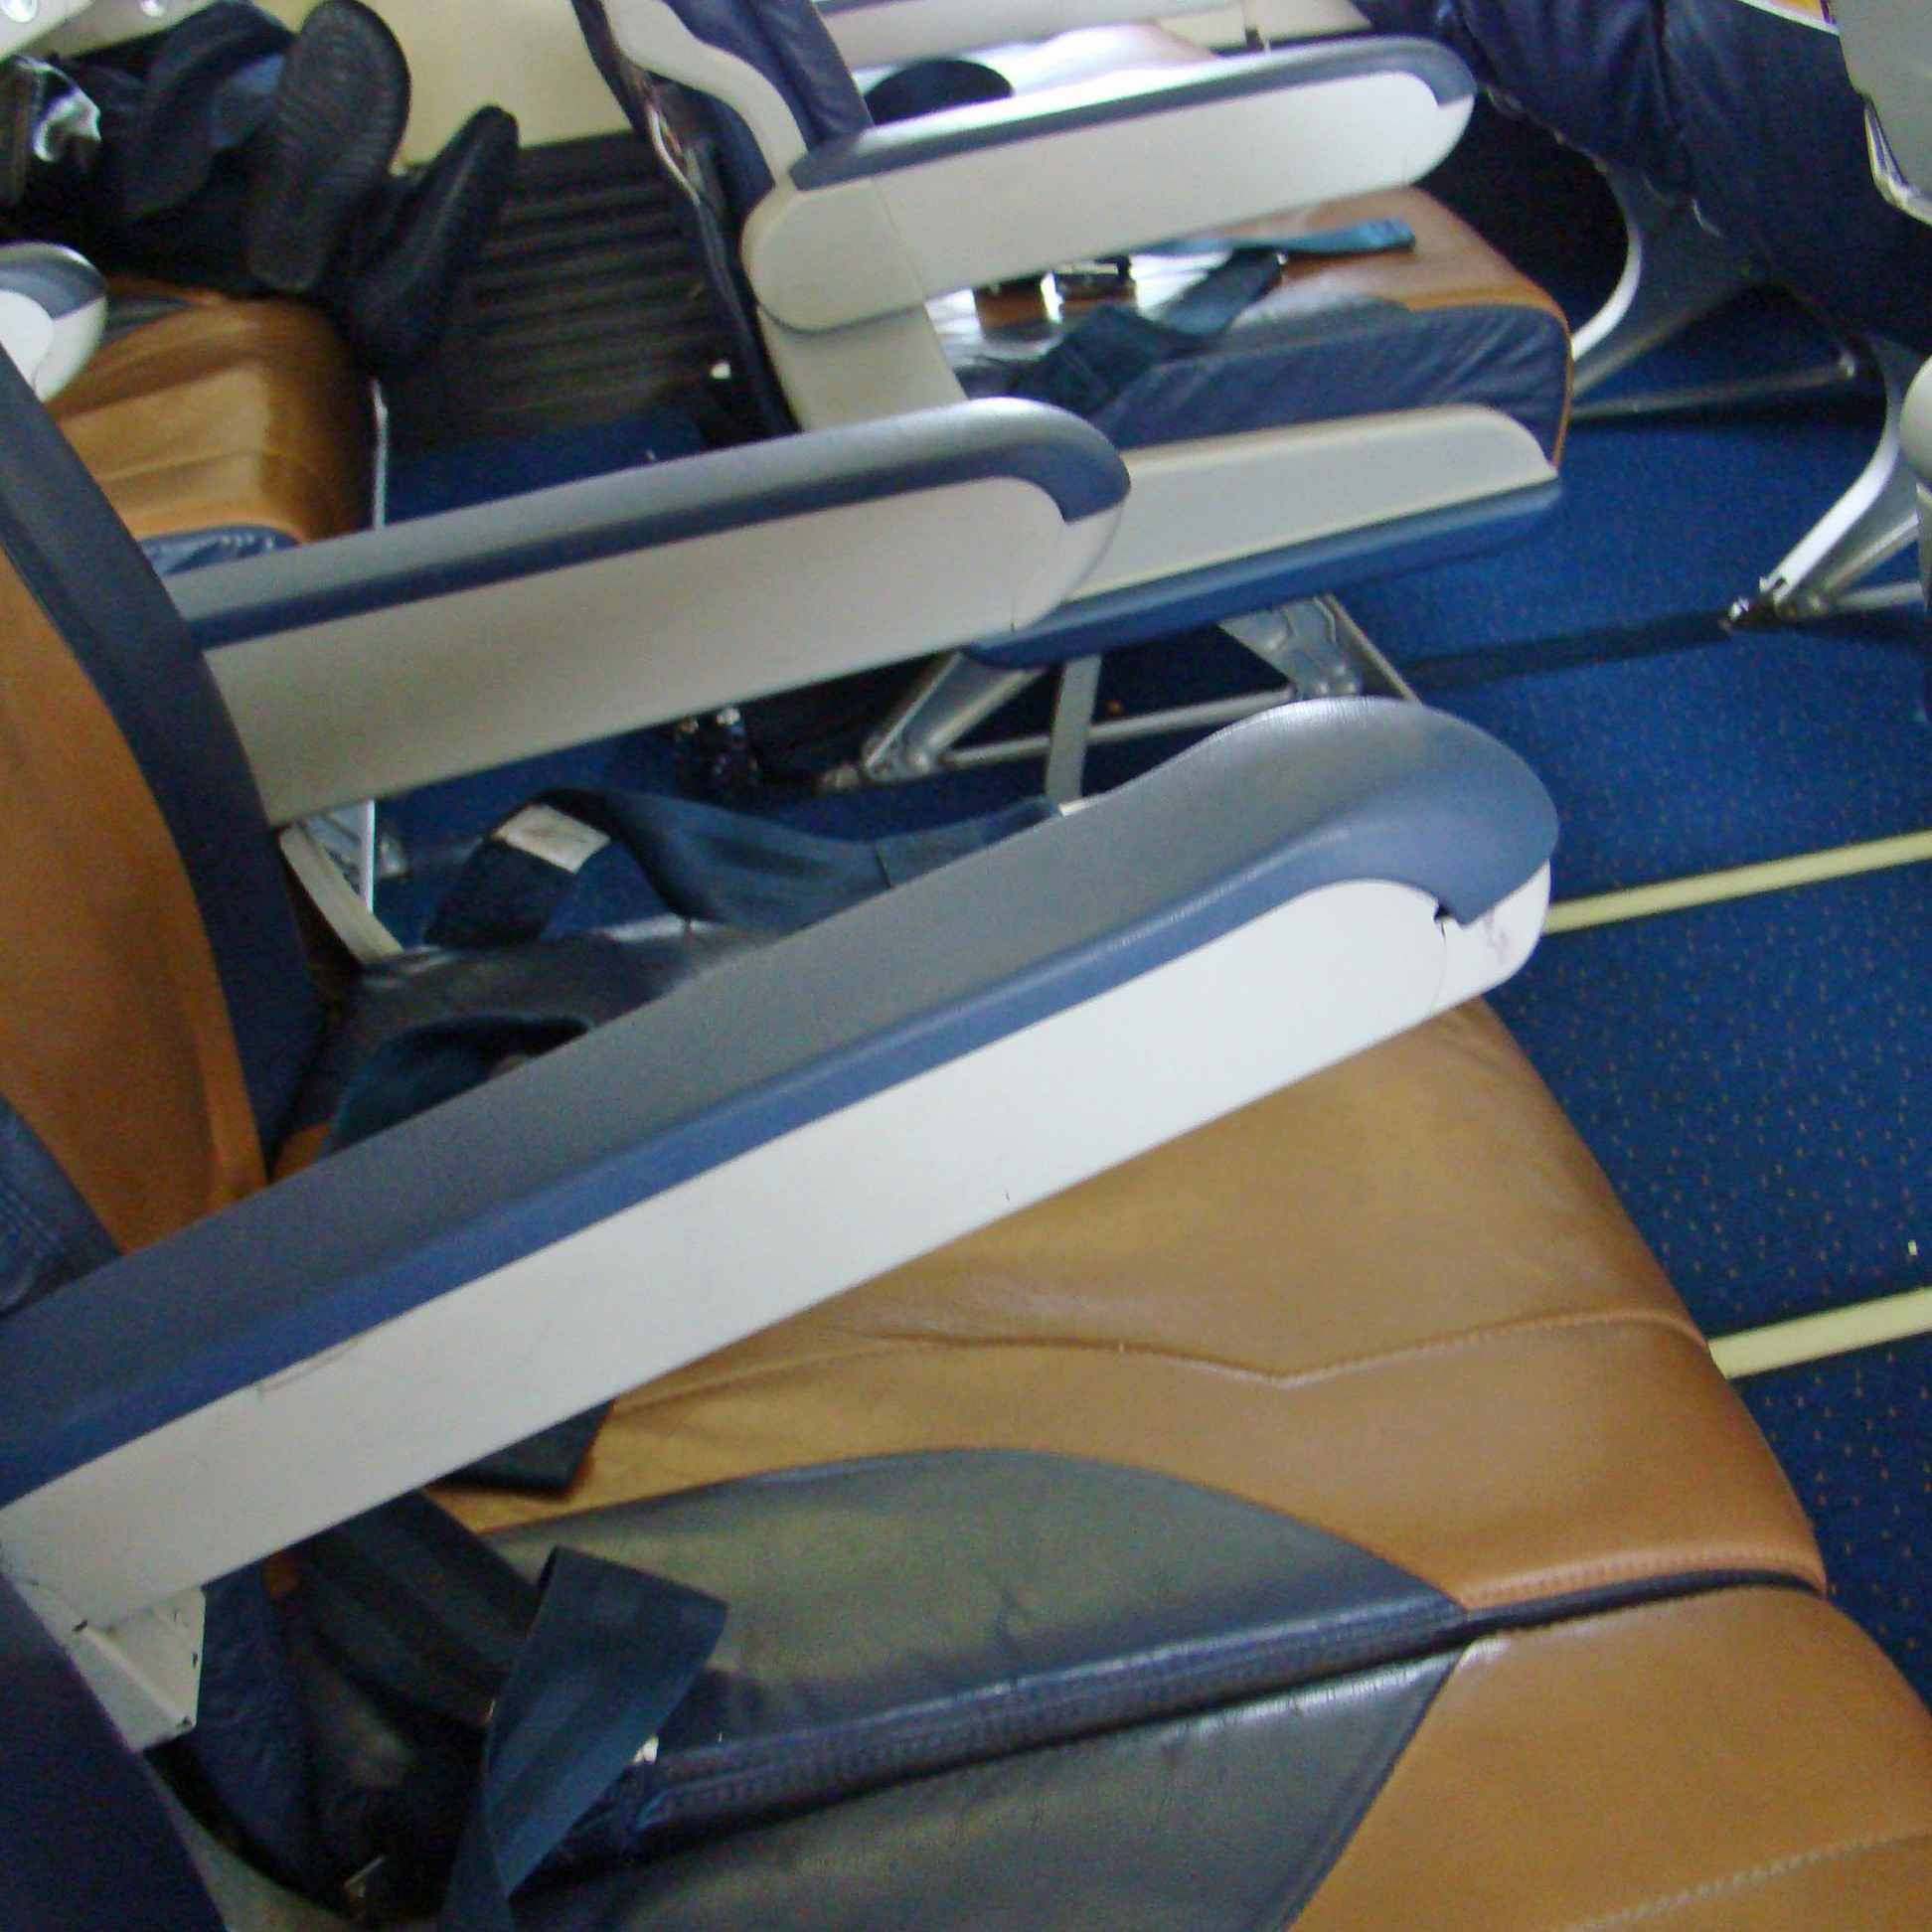 To increase your chances of an upgraded airline seat, arrive early at the airport.